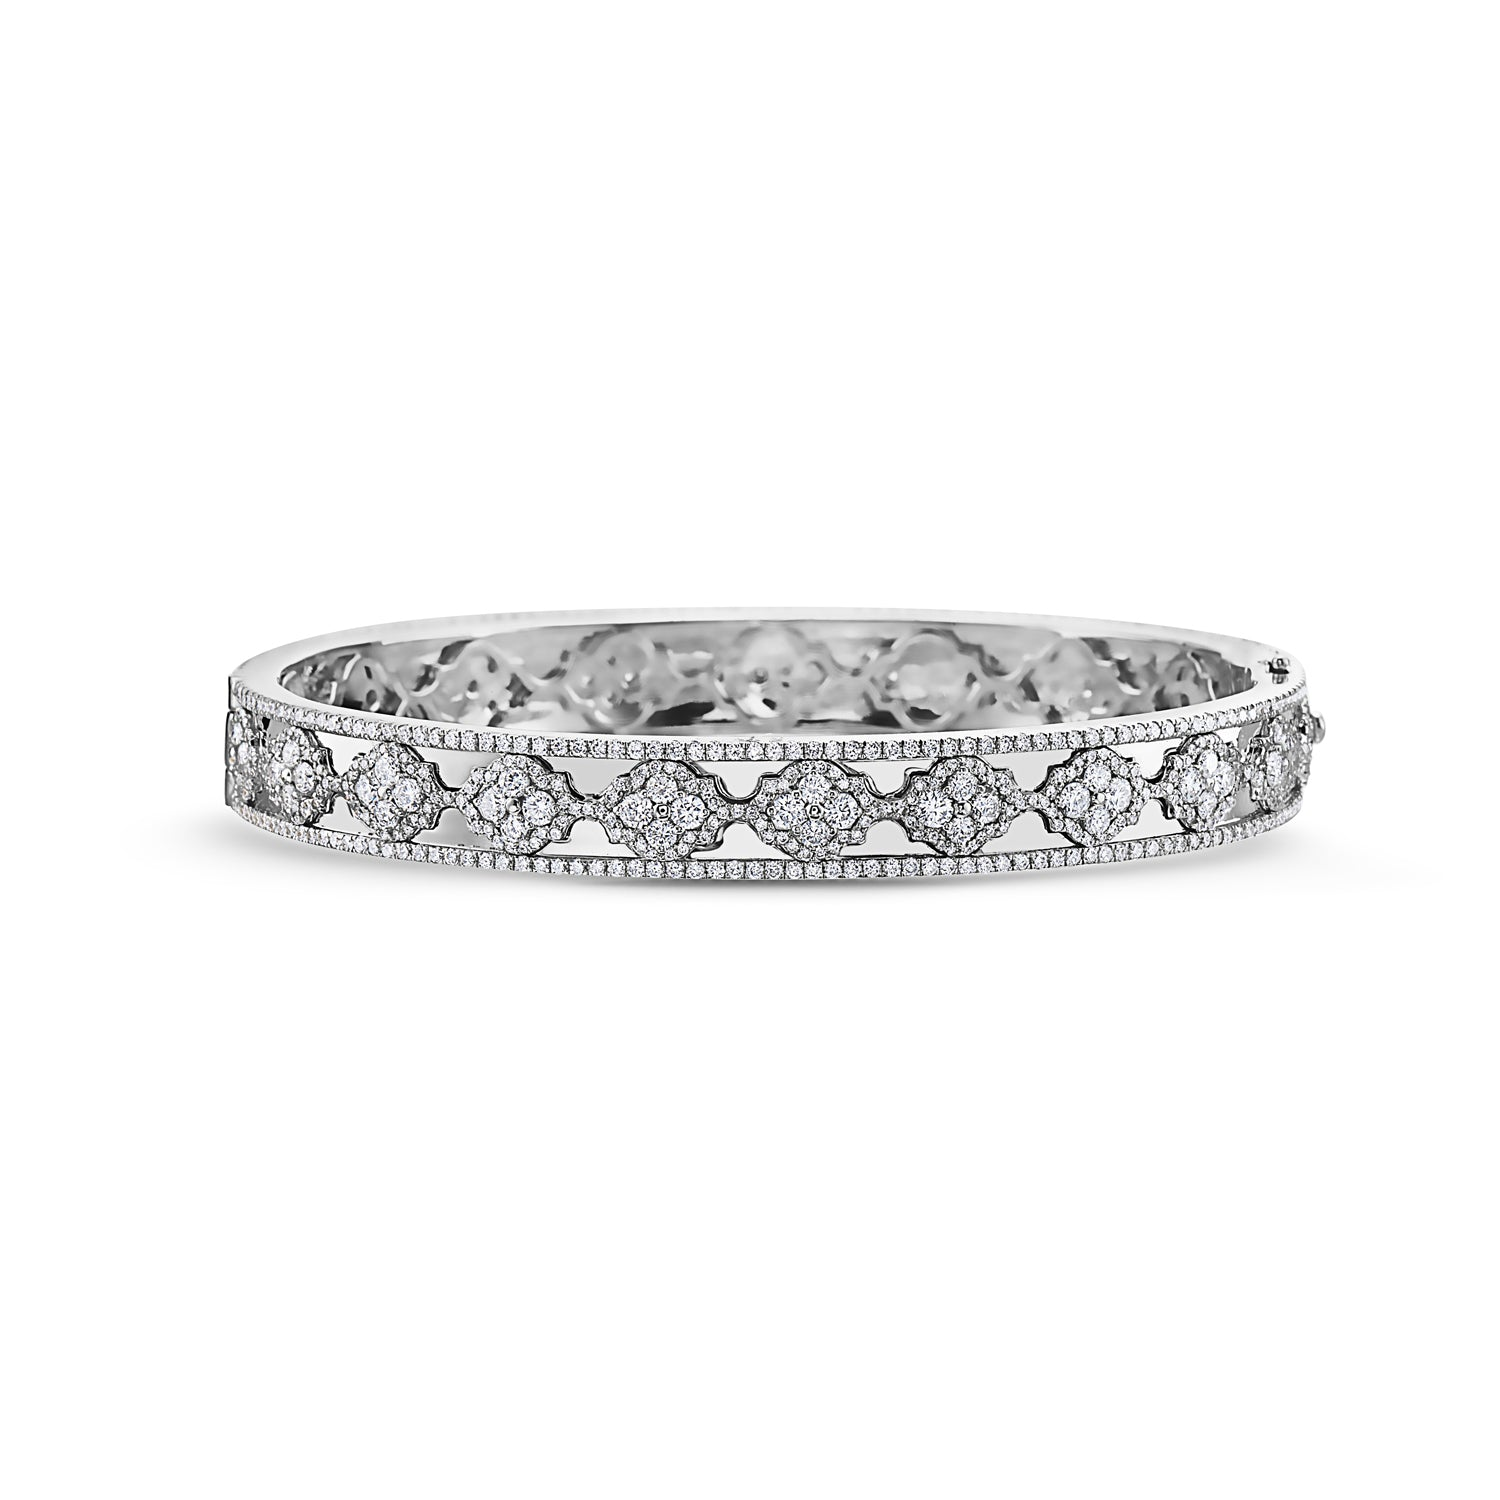 Charles Krypell Precious Pastel White Gold Bangle Bracelet with Diamonds